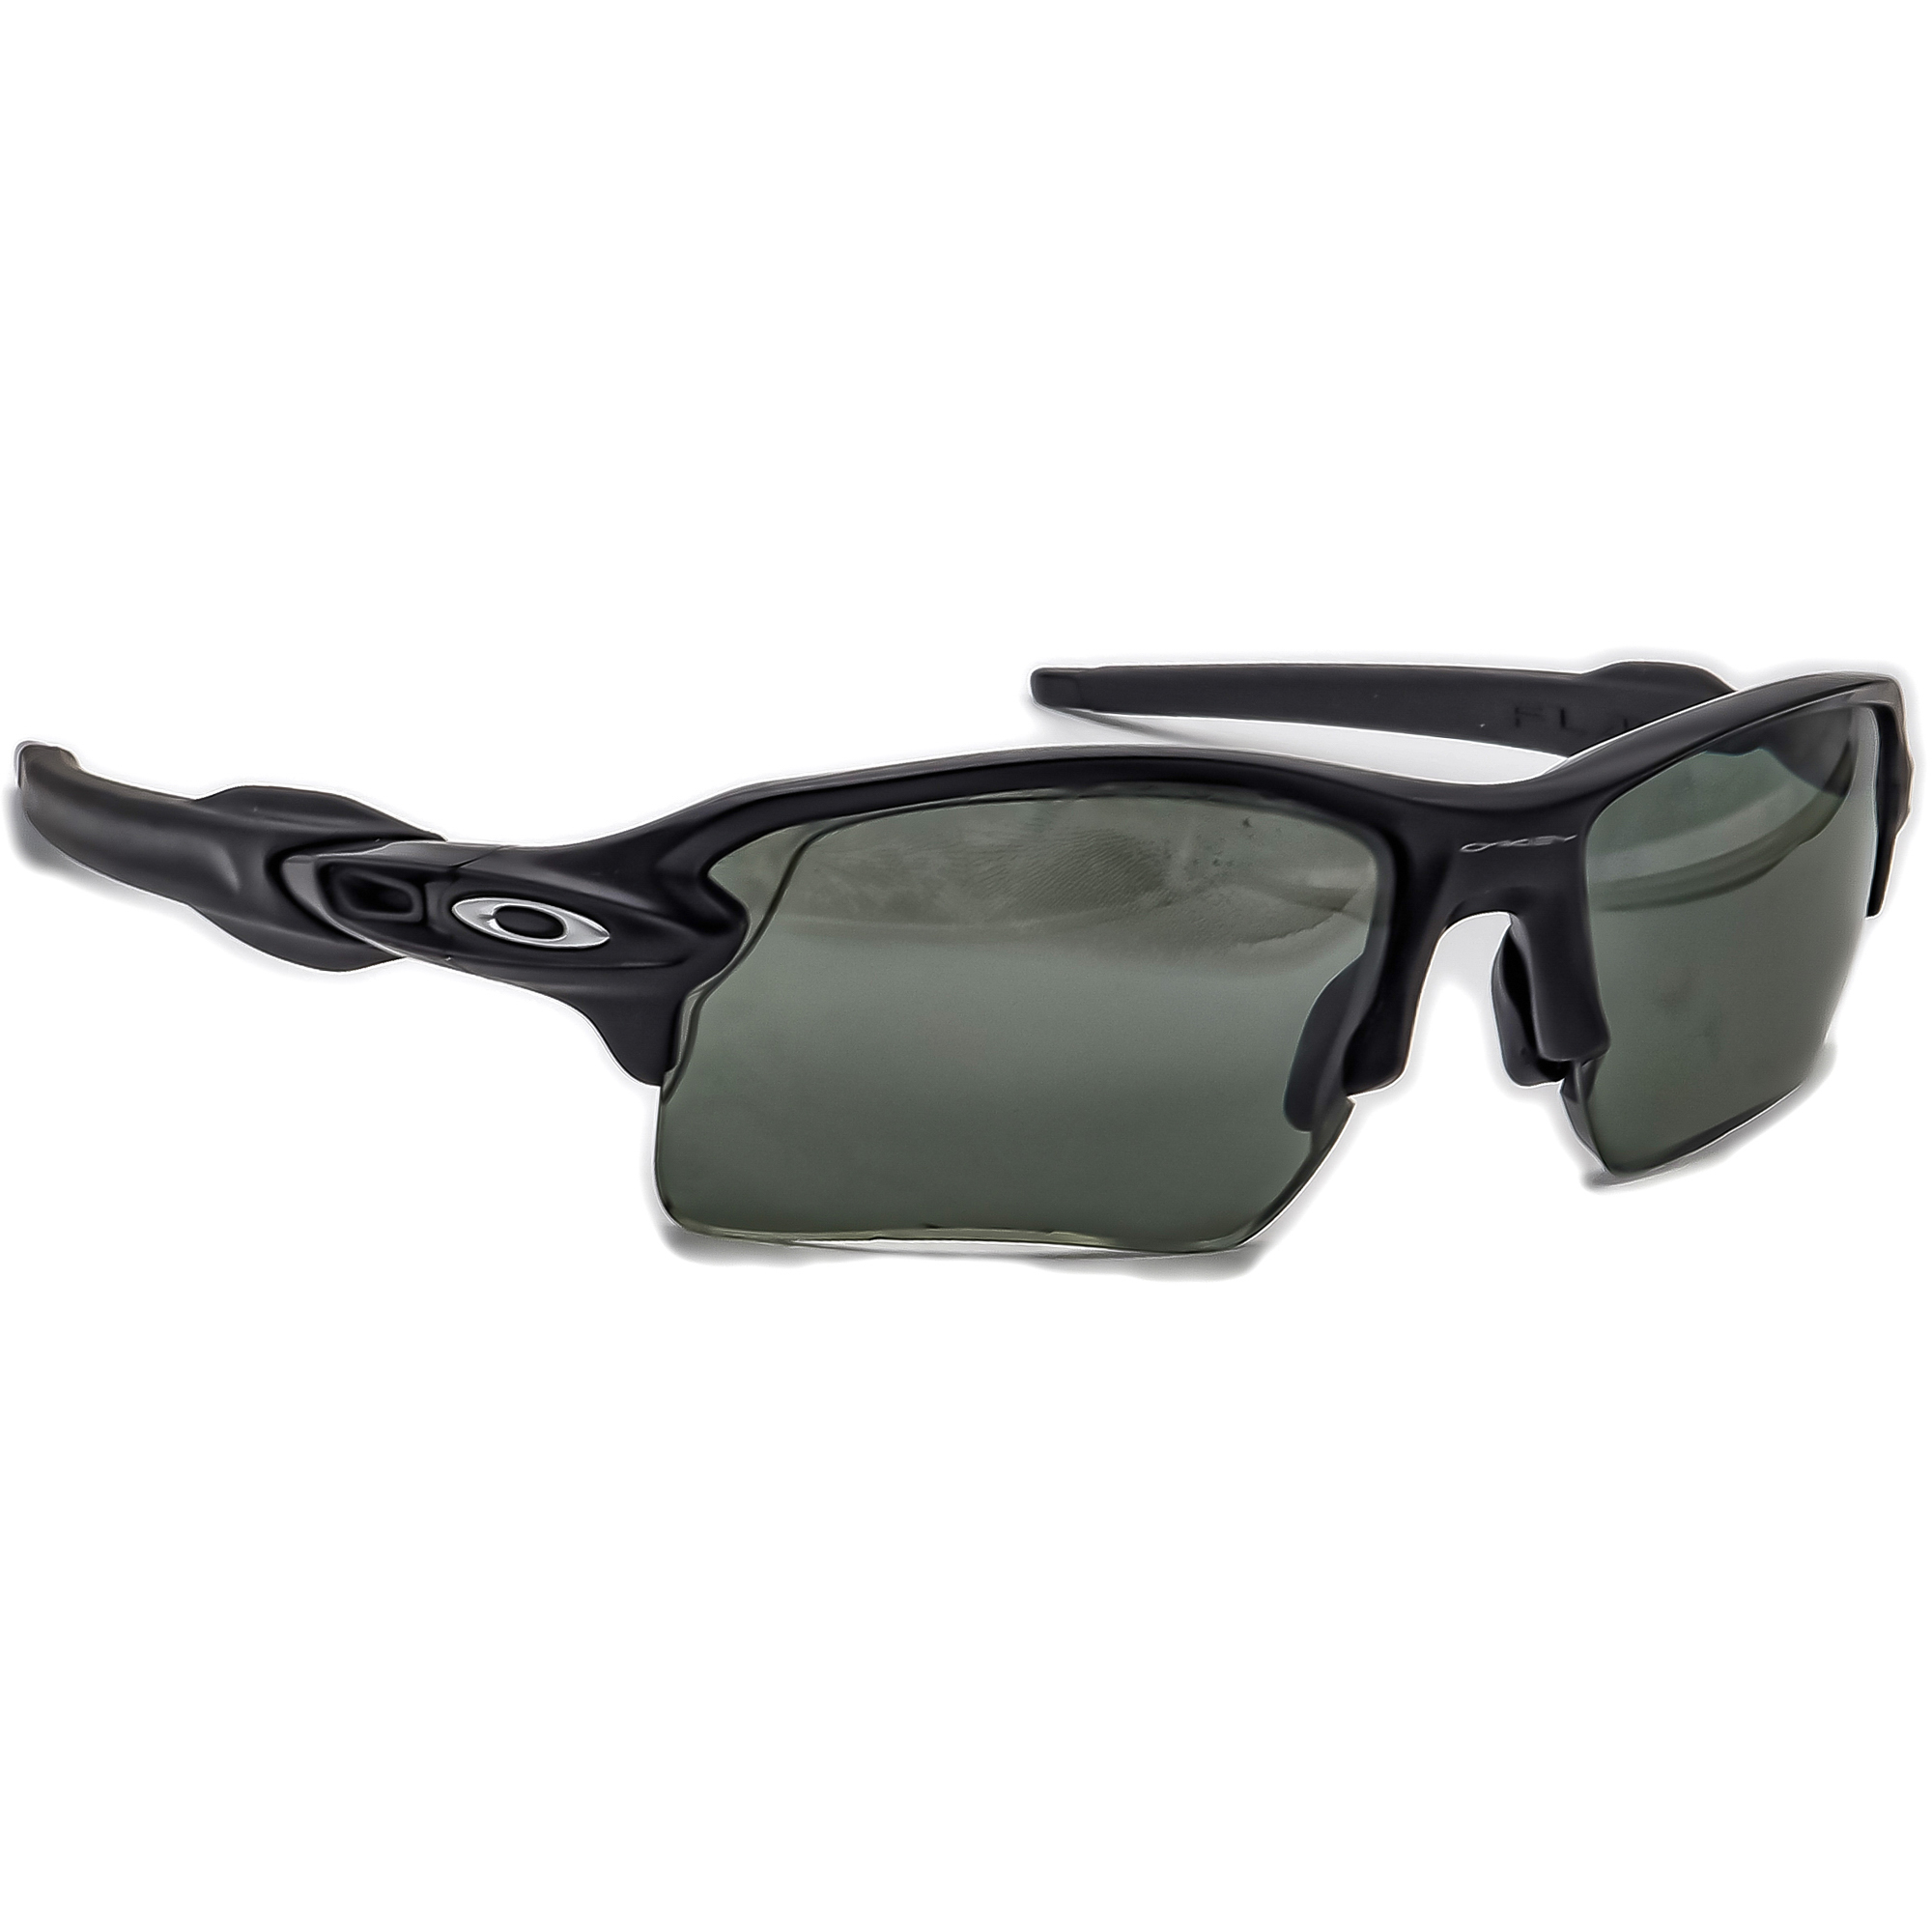 Oakley Flak 2.0 Sunglasses Frame Only